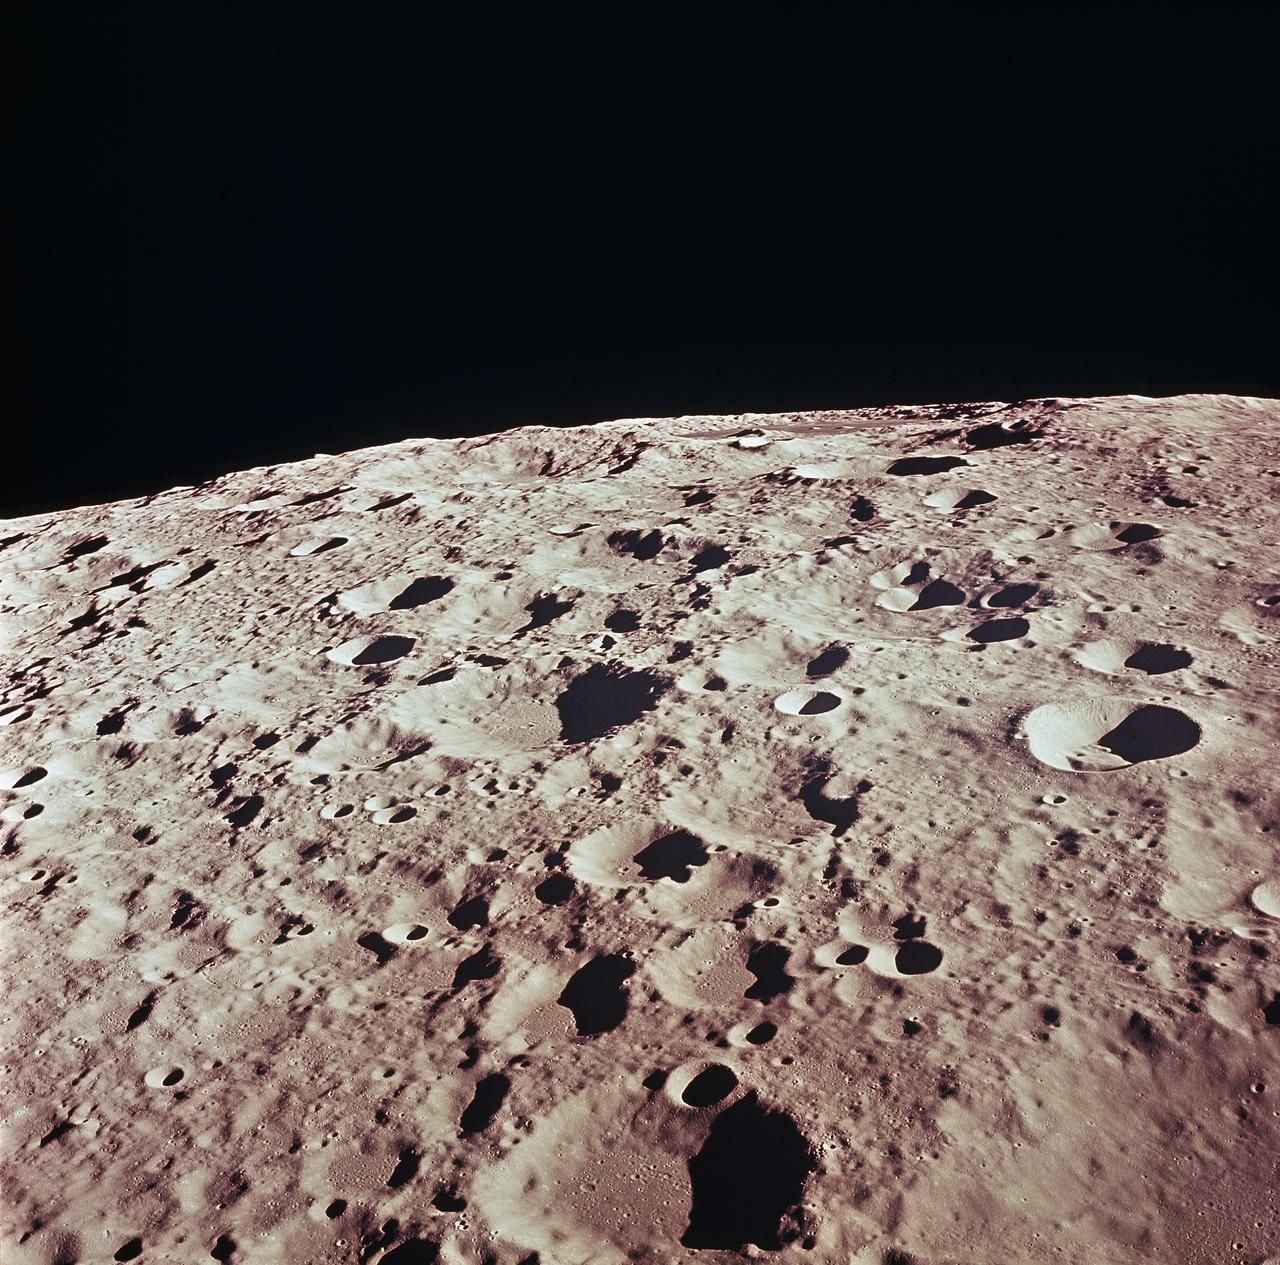 the-moon-lunar-surface-nasa